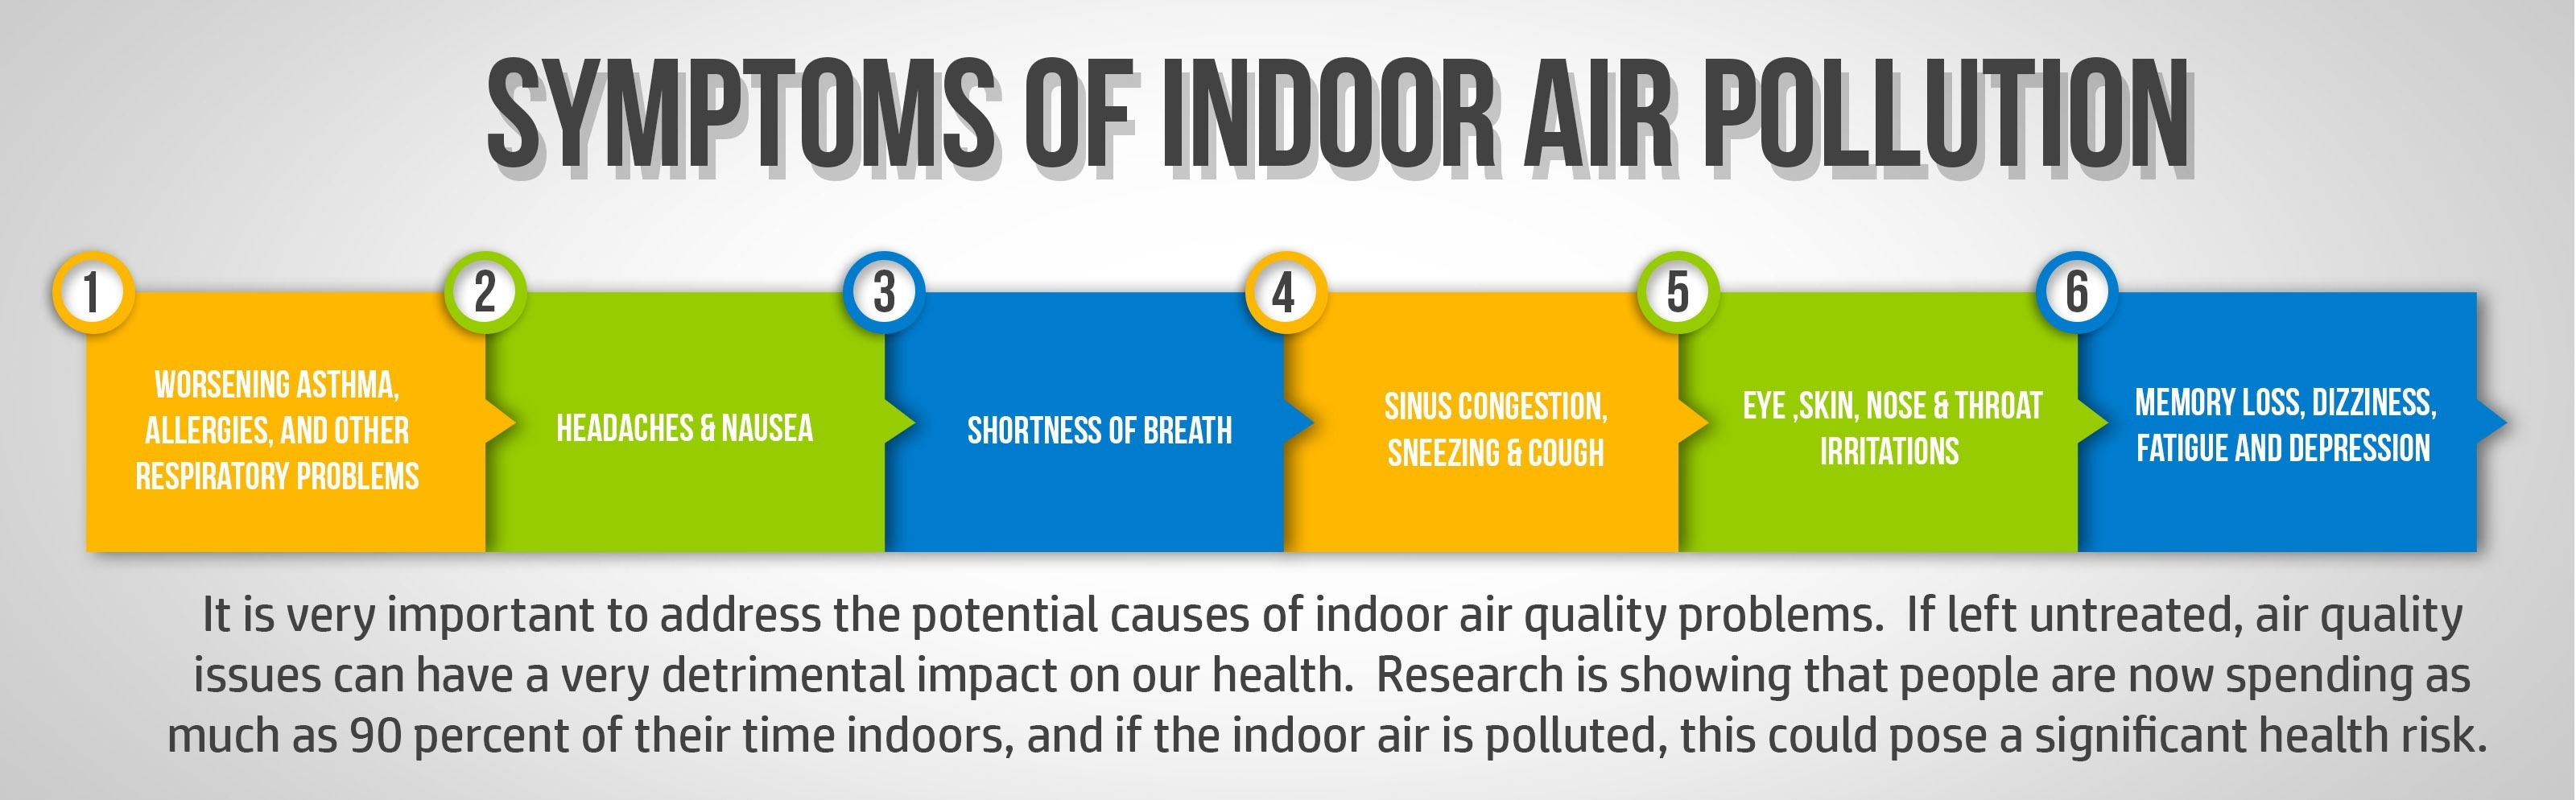 Symptoms of Indoor Air Pollution